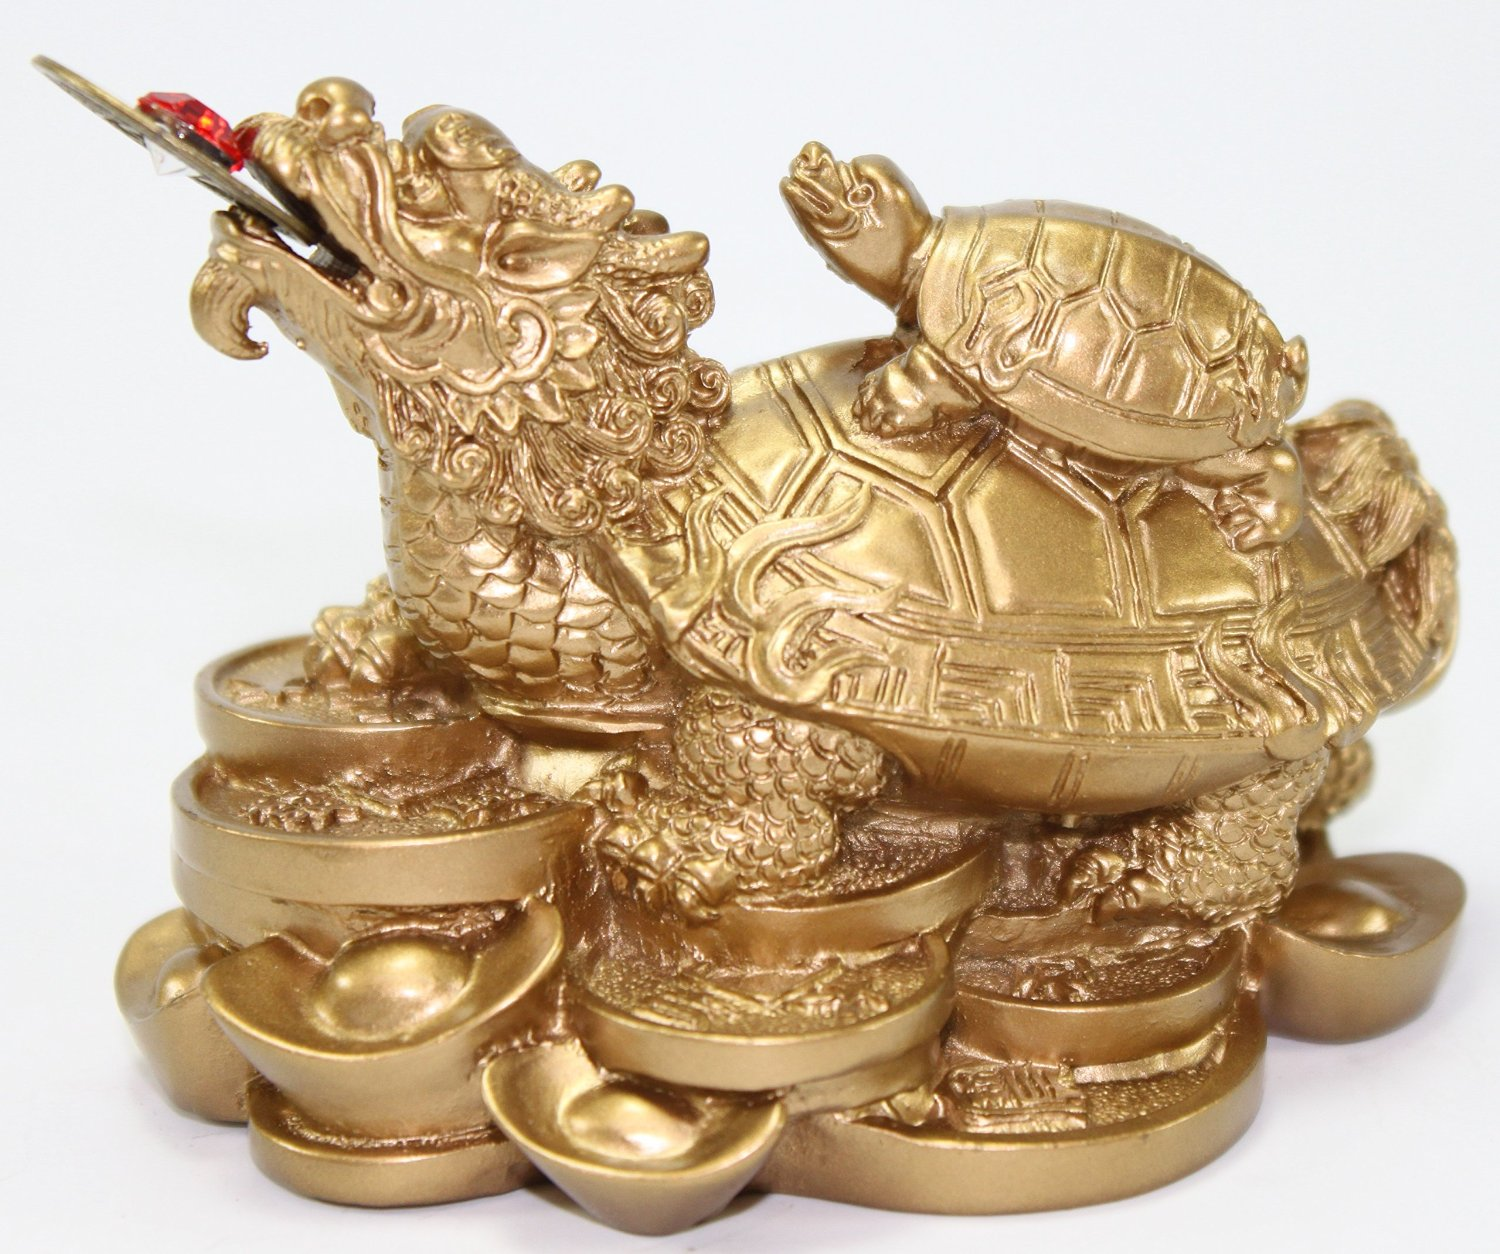 Cheap gold dragon feng shui find gold dragon feng shui deals on feng shui gold dragon turtle wealth protection statue figurine housewarming congratulatory paperweights gift home decor us biocorpaavc Images